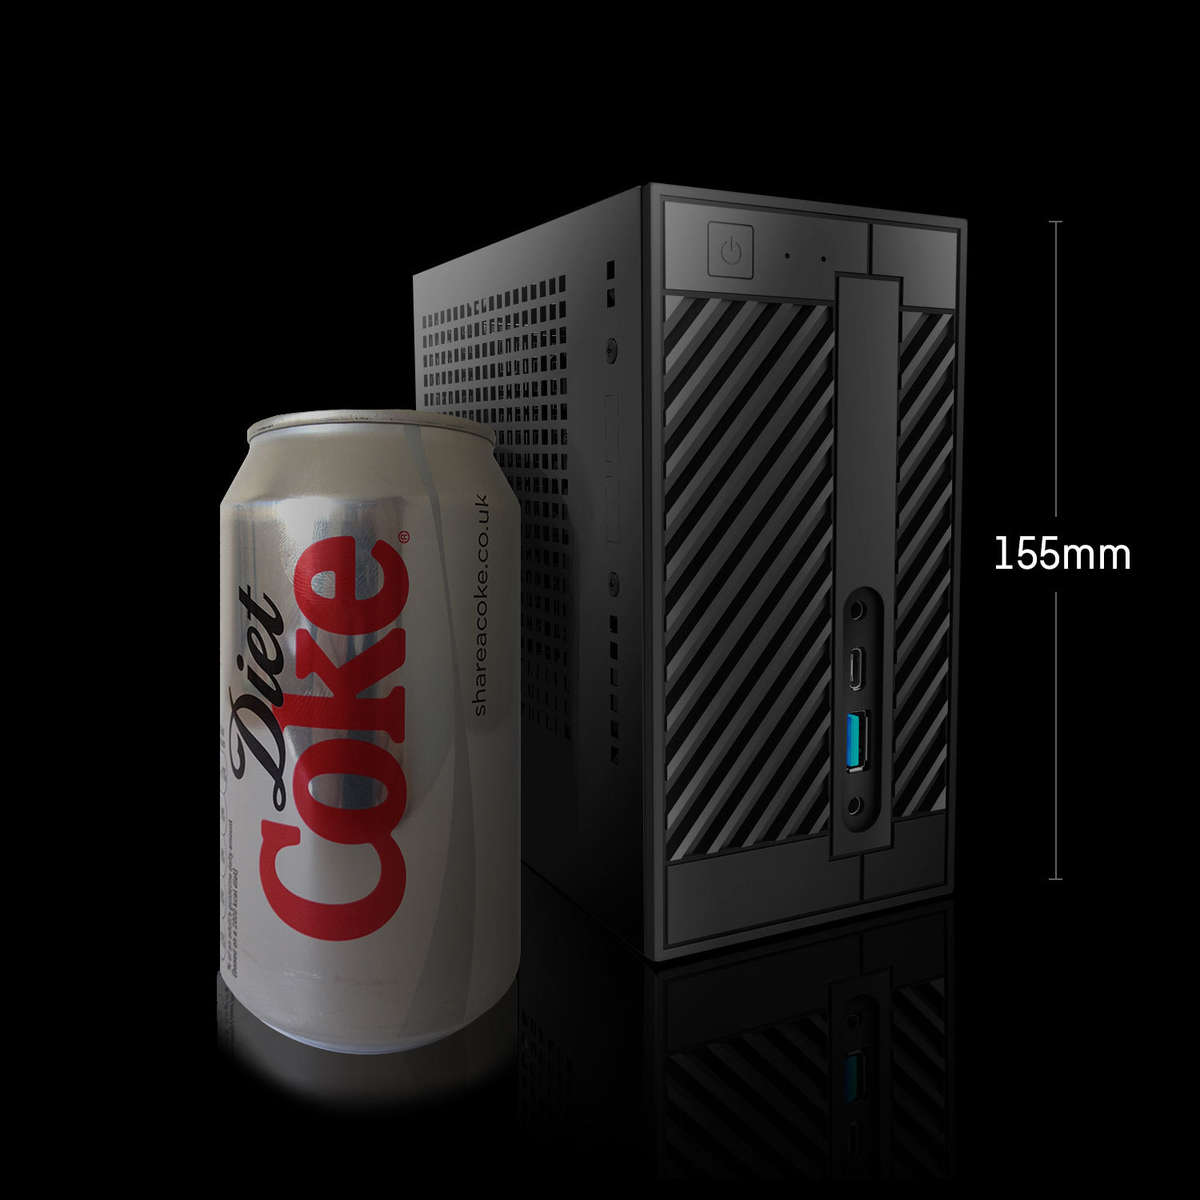 Image of a Chillblast Fusion Mini PC shown next to a can of Coke to highlight just how small a system it is.